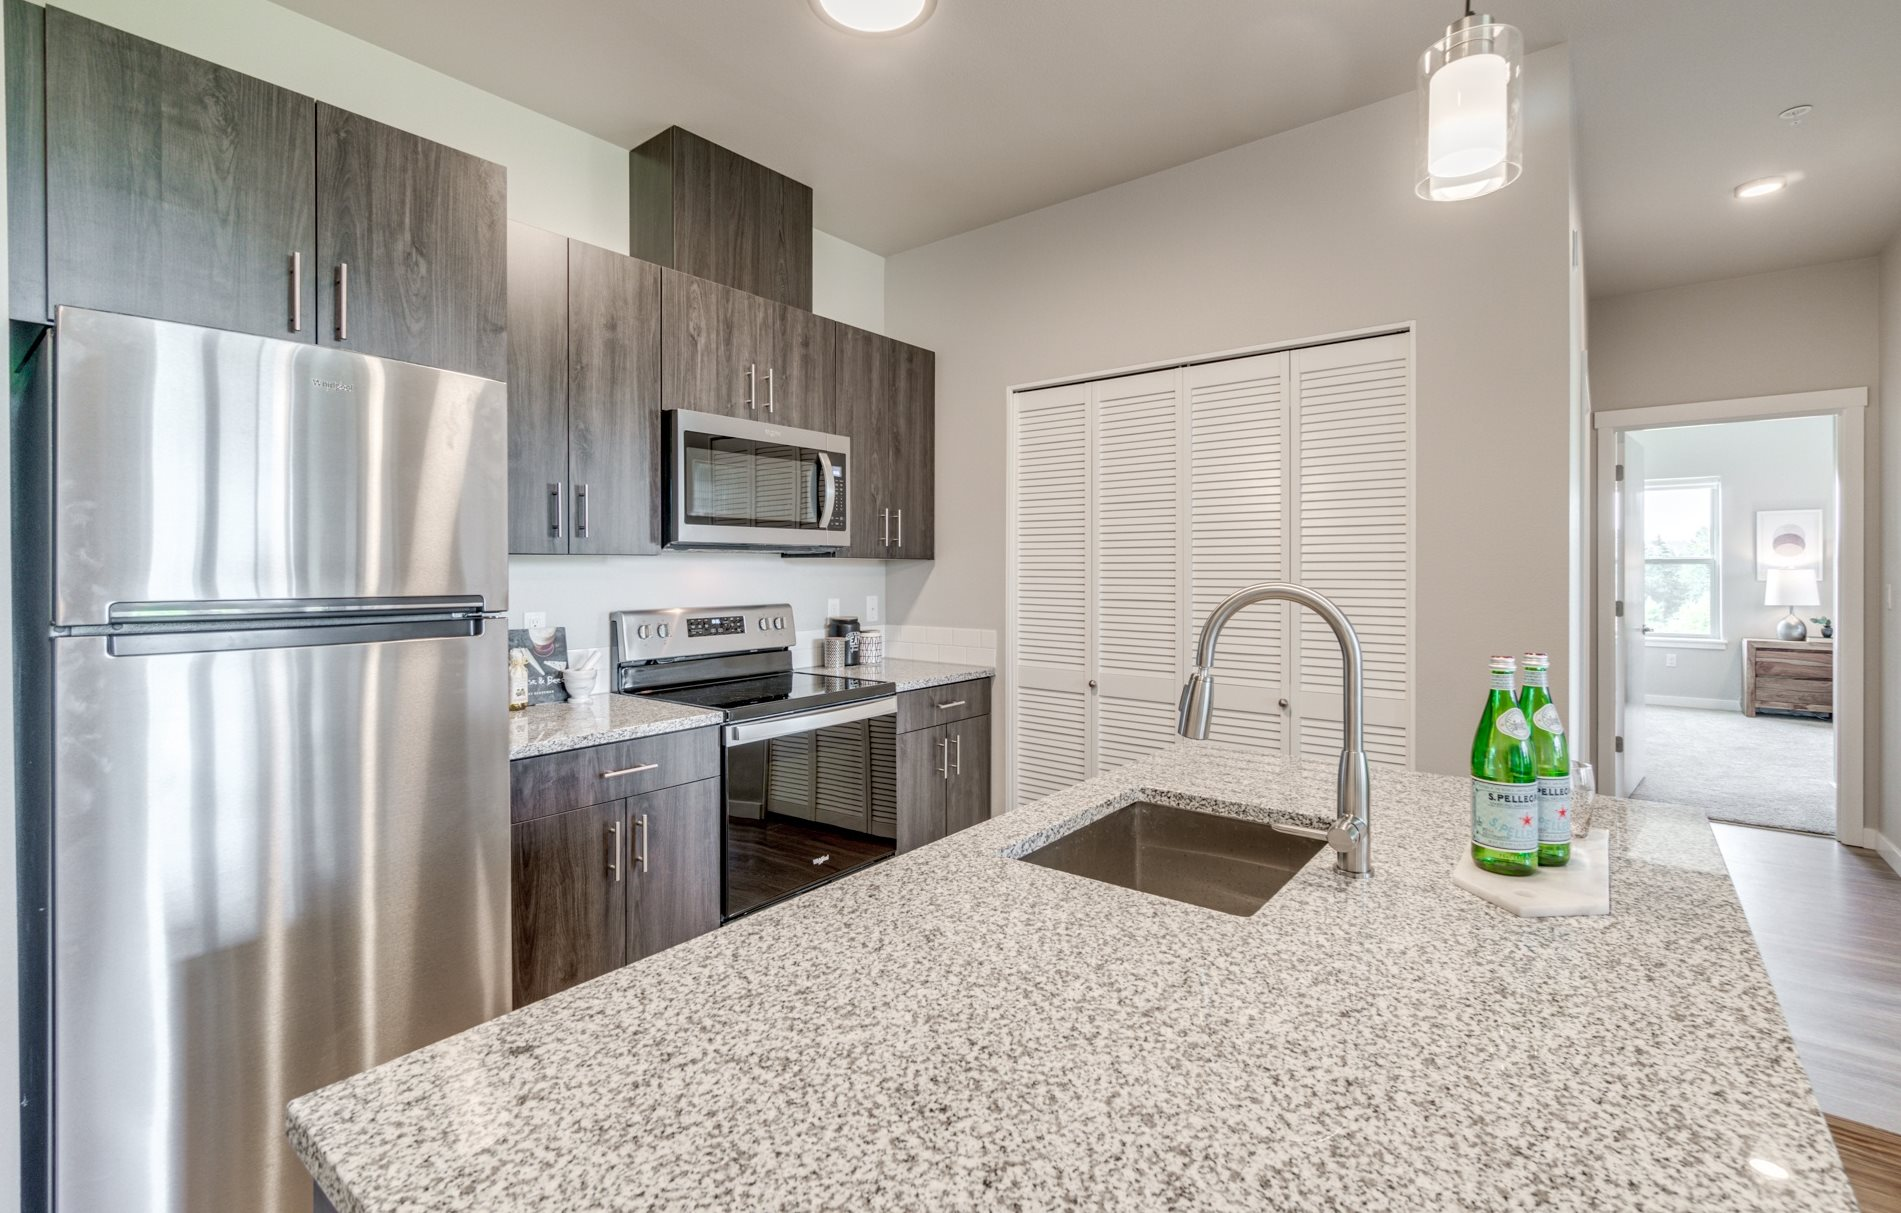 view of kitchen with dark cabinet and stainless steel appliances. Microwave over stove.